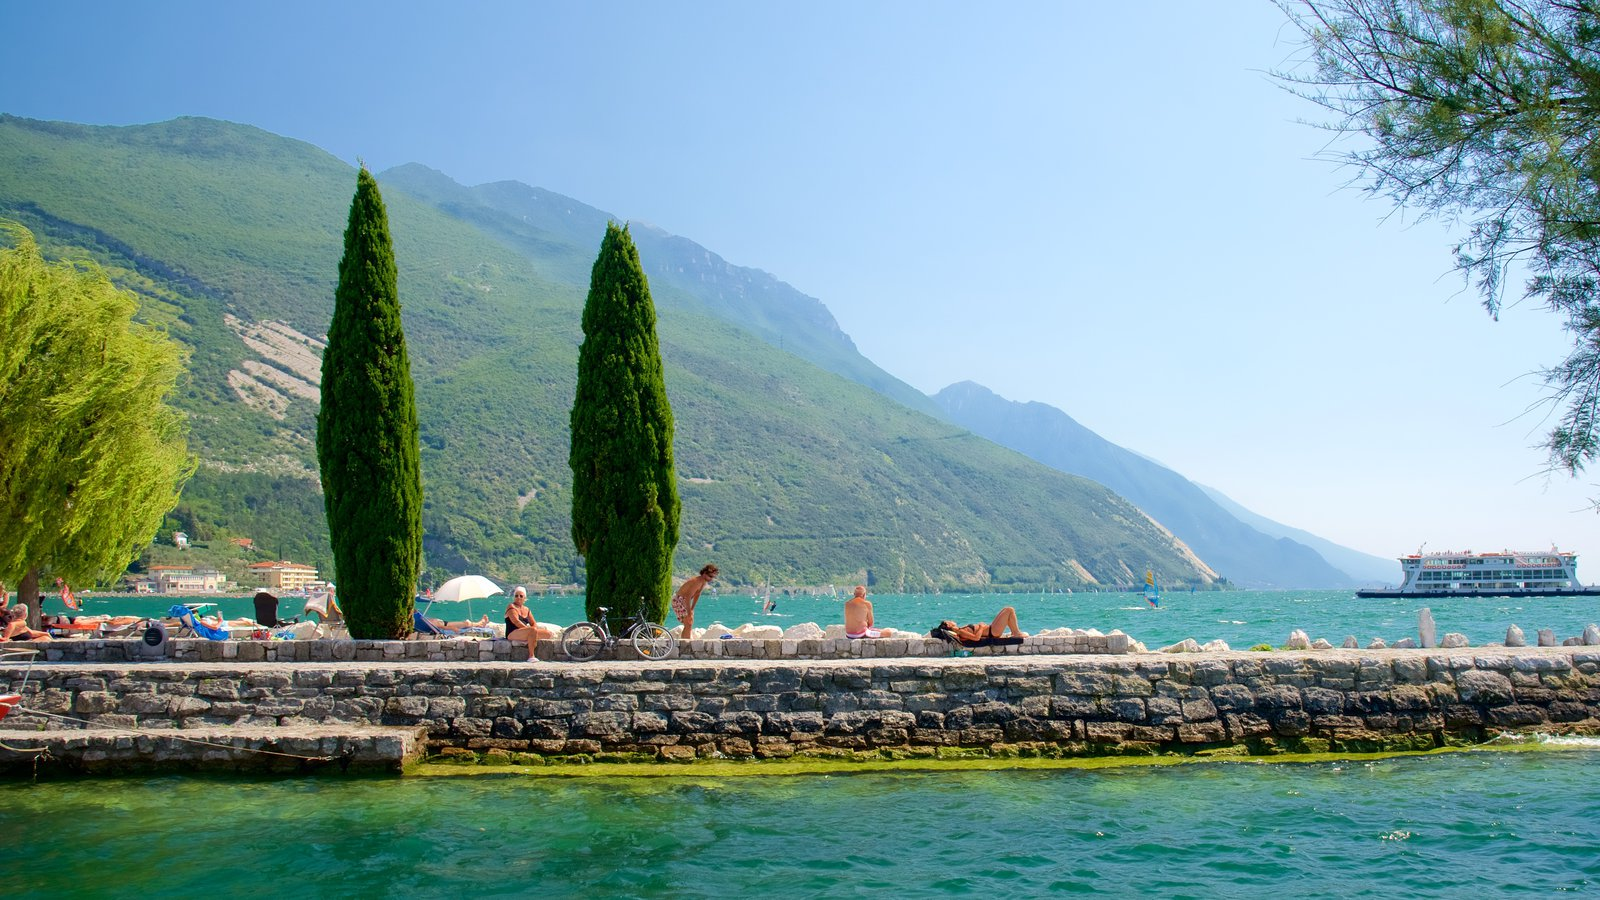 Nago-Torbole which includes general coastal views and boating as well as a small group of people